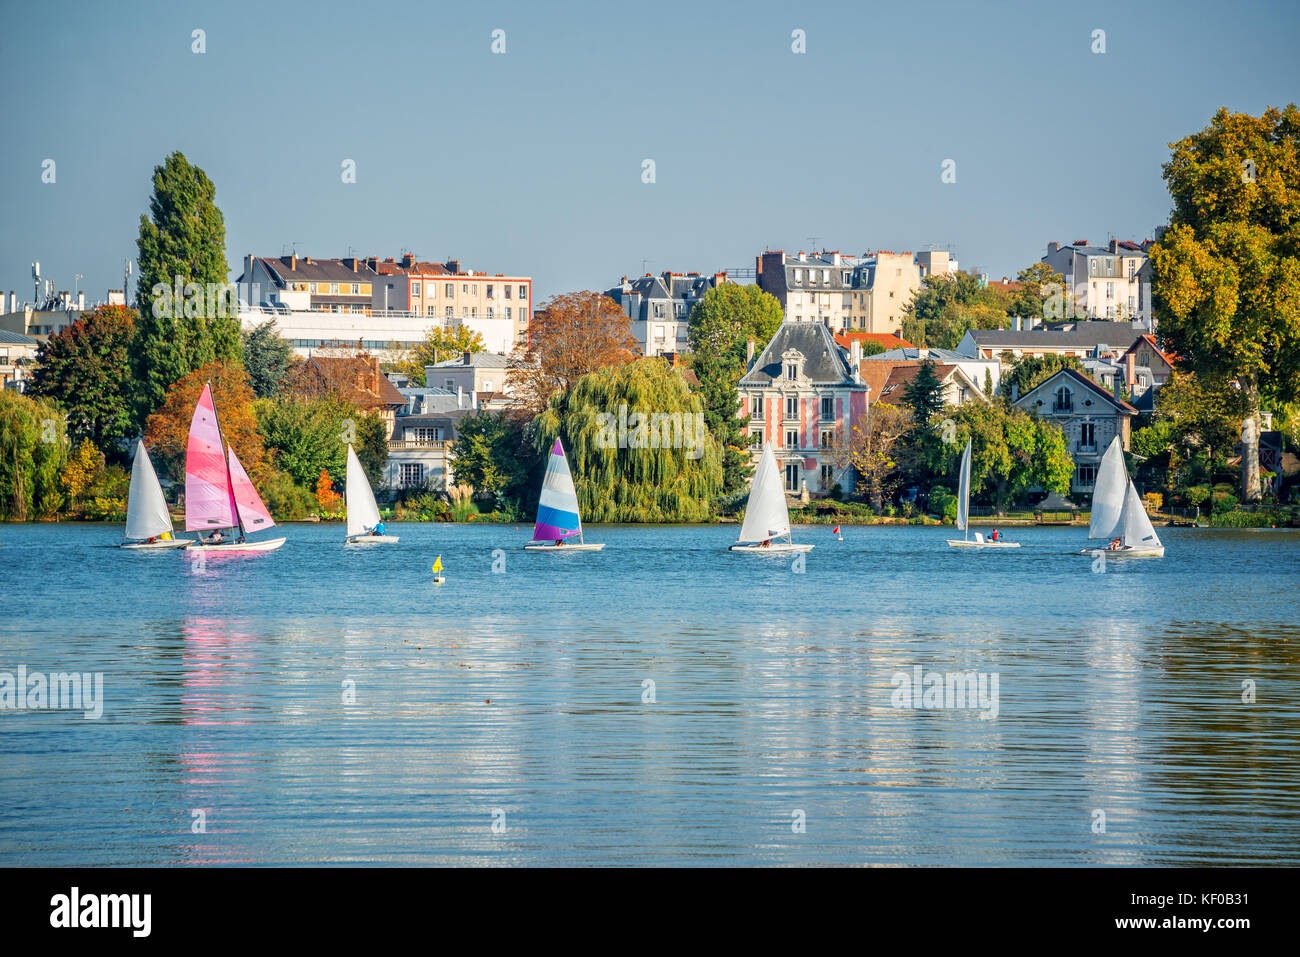 Vintage sailing holiday stock photos vintage sailing for Enghien les bains